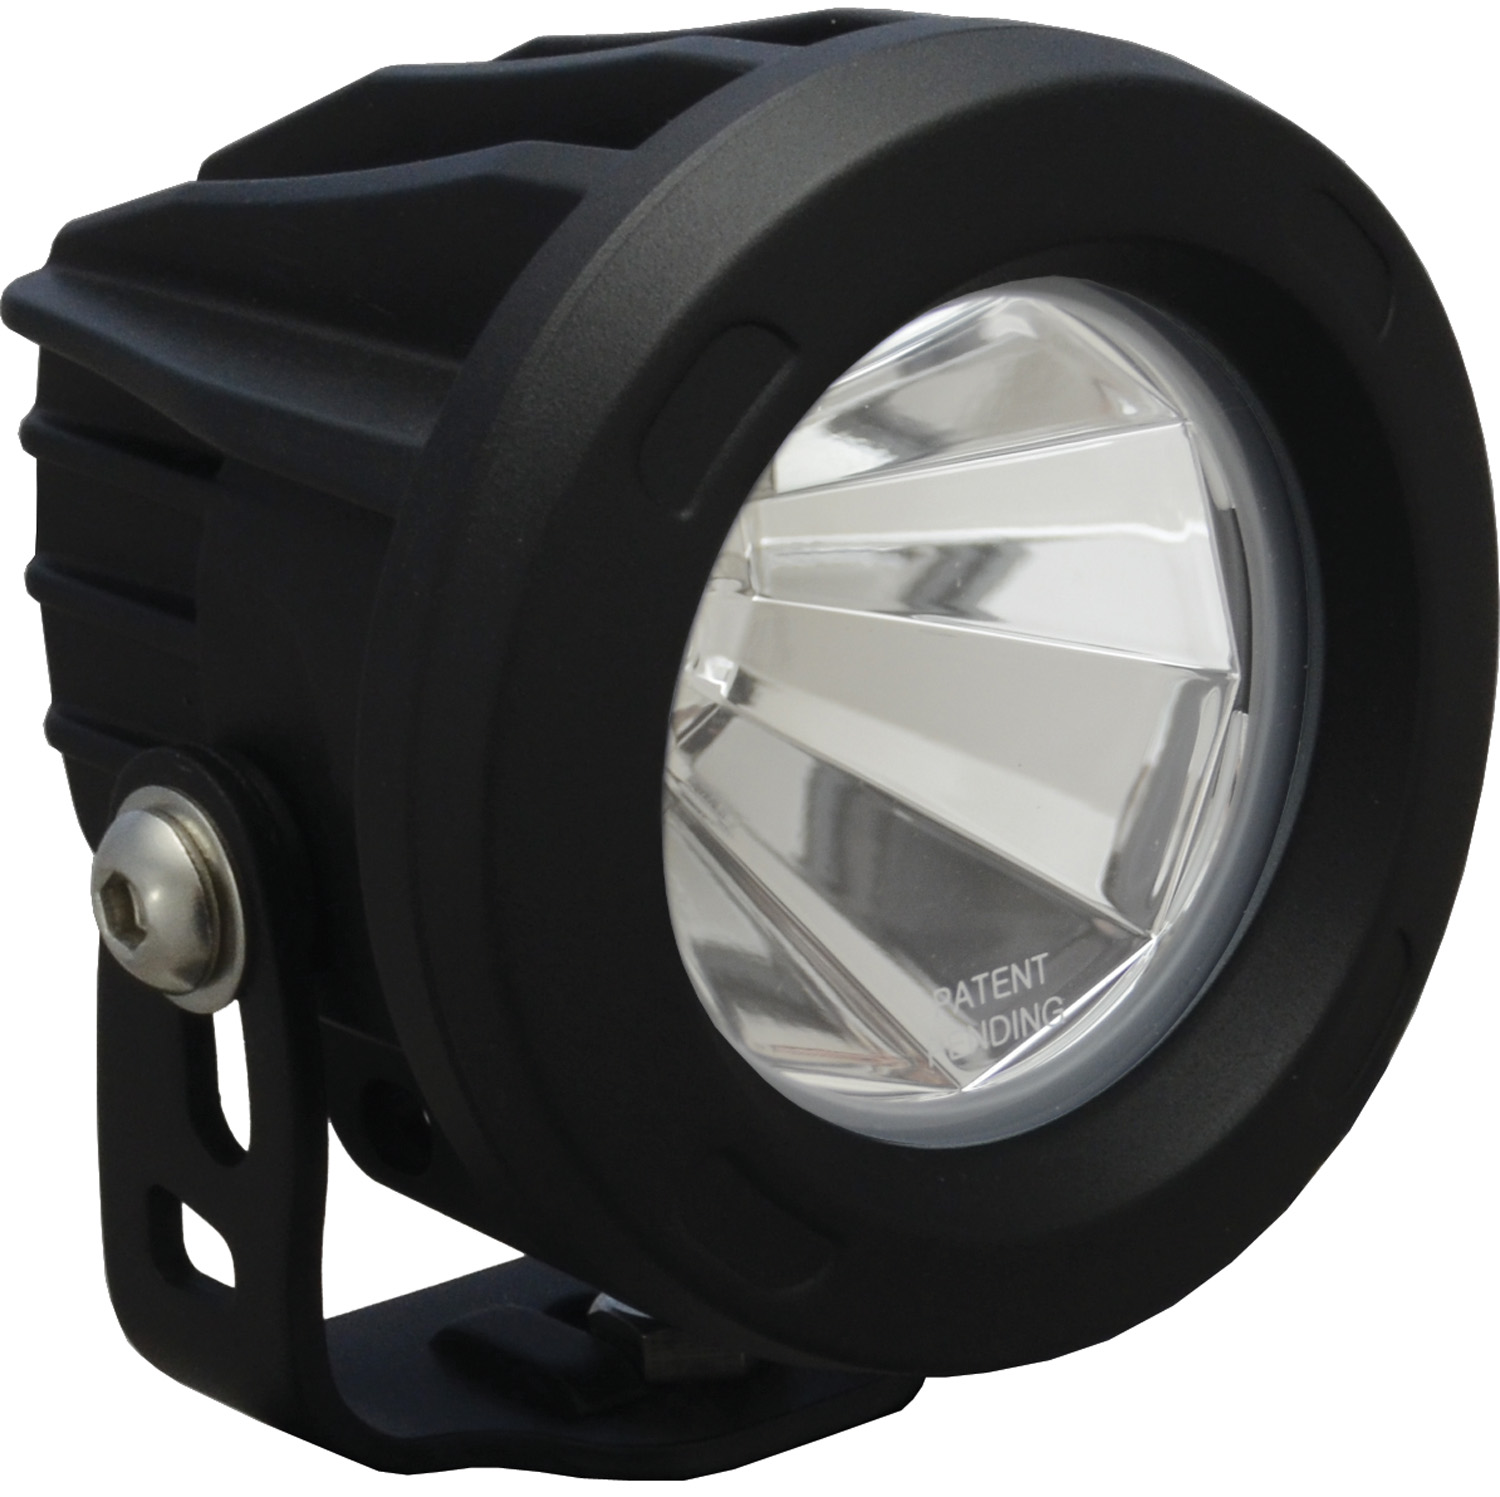 OPTIMUS ROUND BLACK 1 10W LED 60? FLOOD